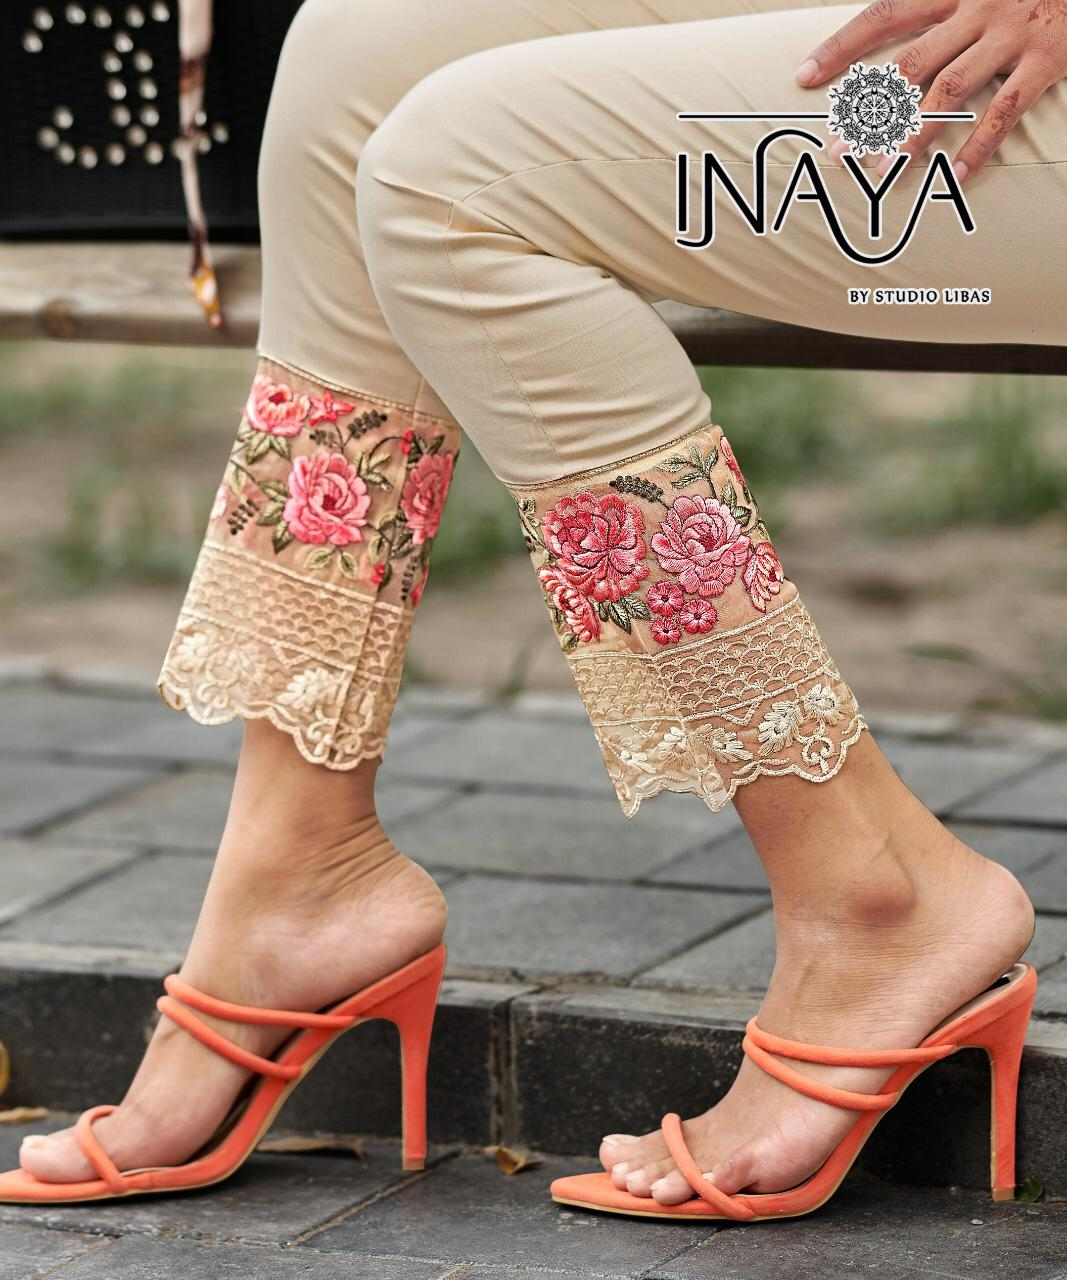 Inaya Studio Libas Cigarette Vol 15 Designer Readymade Pure Stretchable Cotton With Work Cigarette Pants At Wholesale Rate